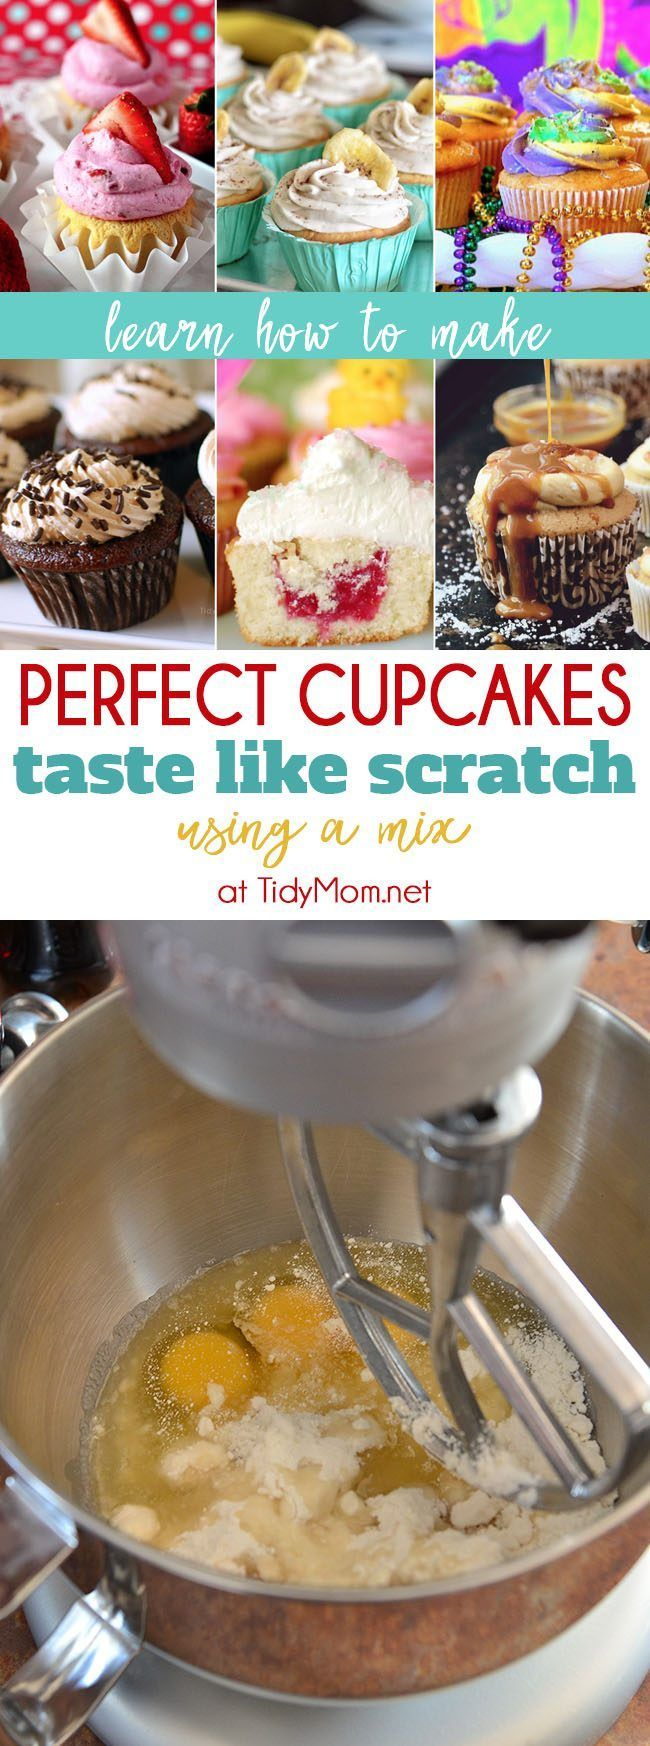 What types of desserts can you make with cake mixes?